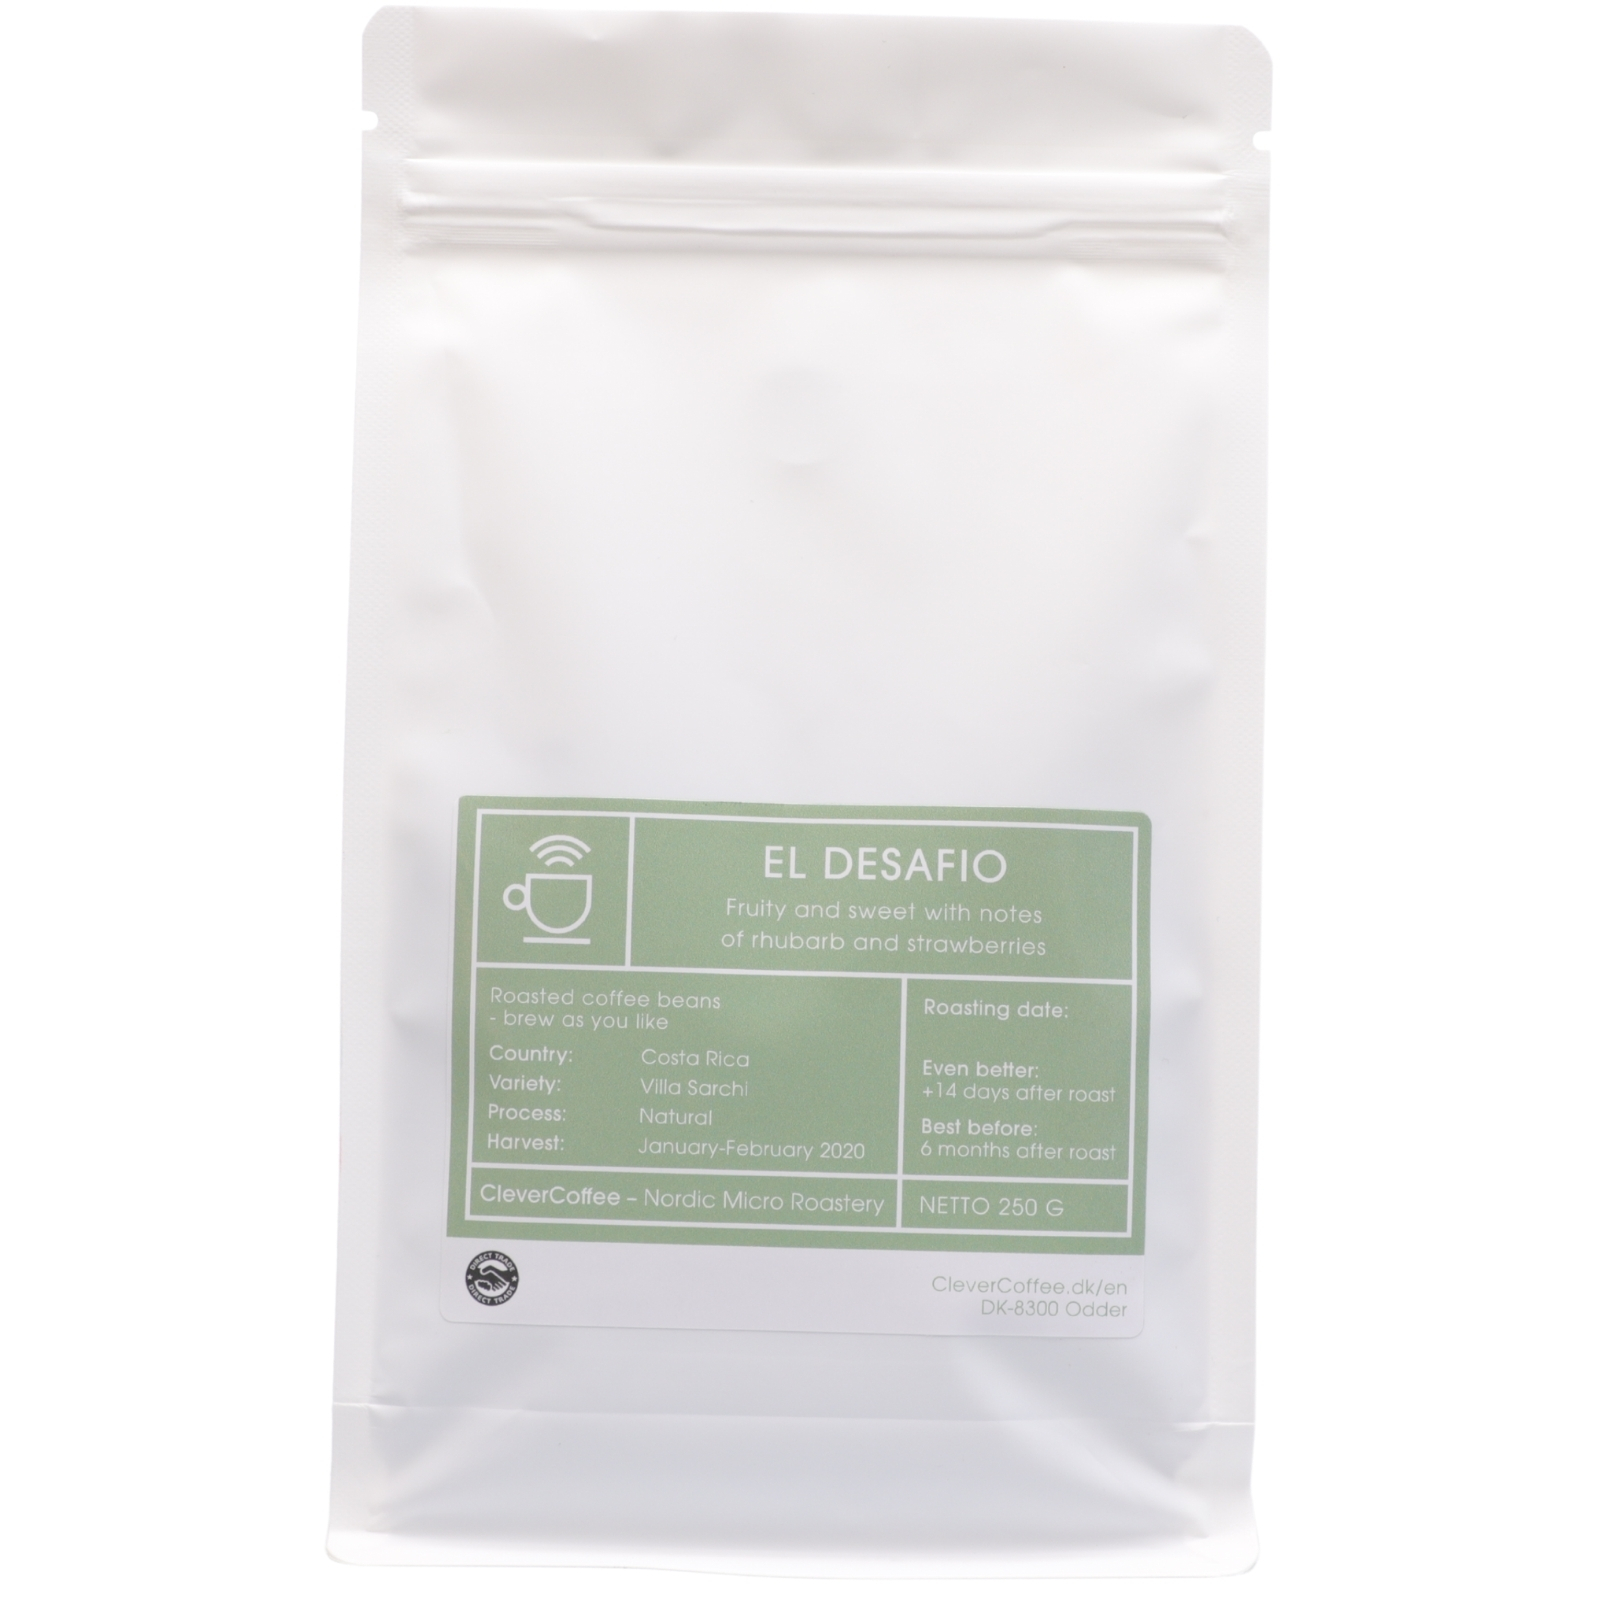 El Desafio natural - Costa Rica, Clever Coffee | 250g